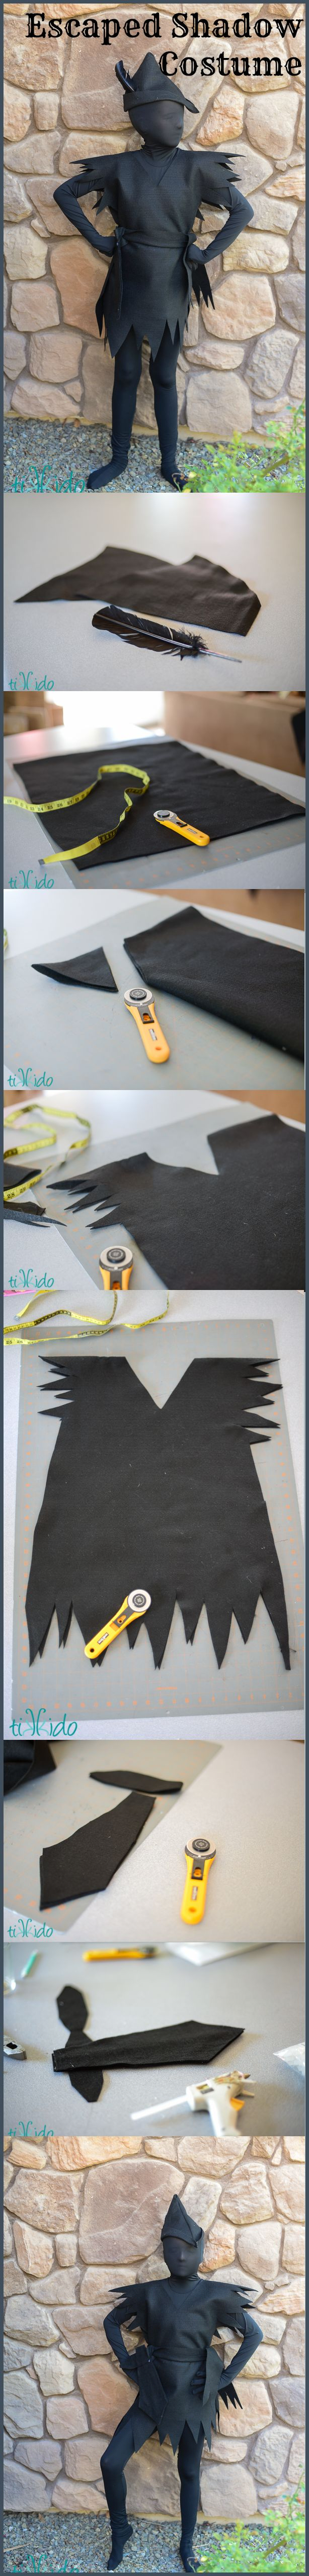 DIY Peter Pan Costume craft halloween crafts kids crafts diy halloween costumes (I kind of really lovee this!:))